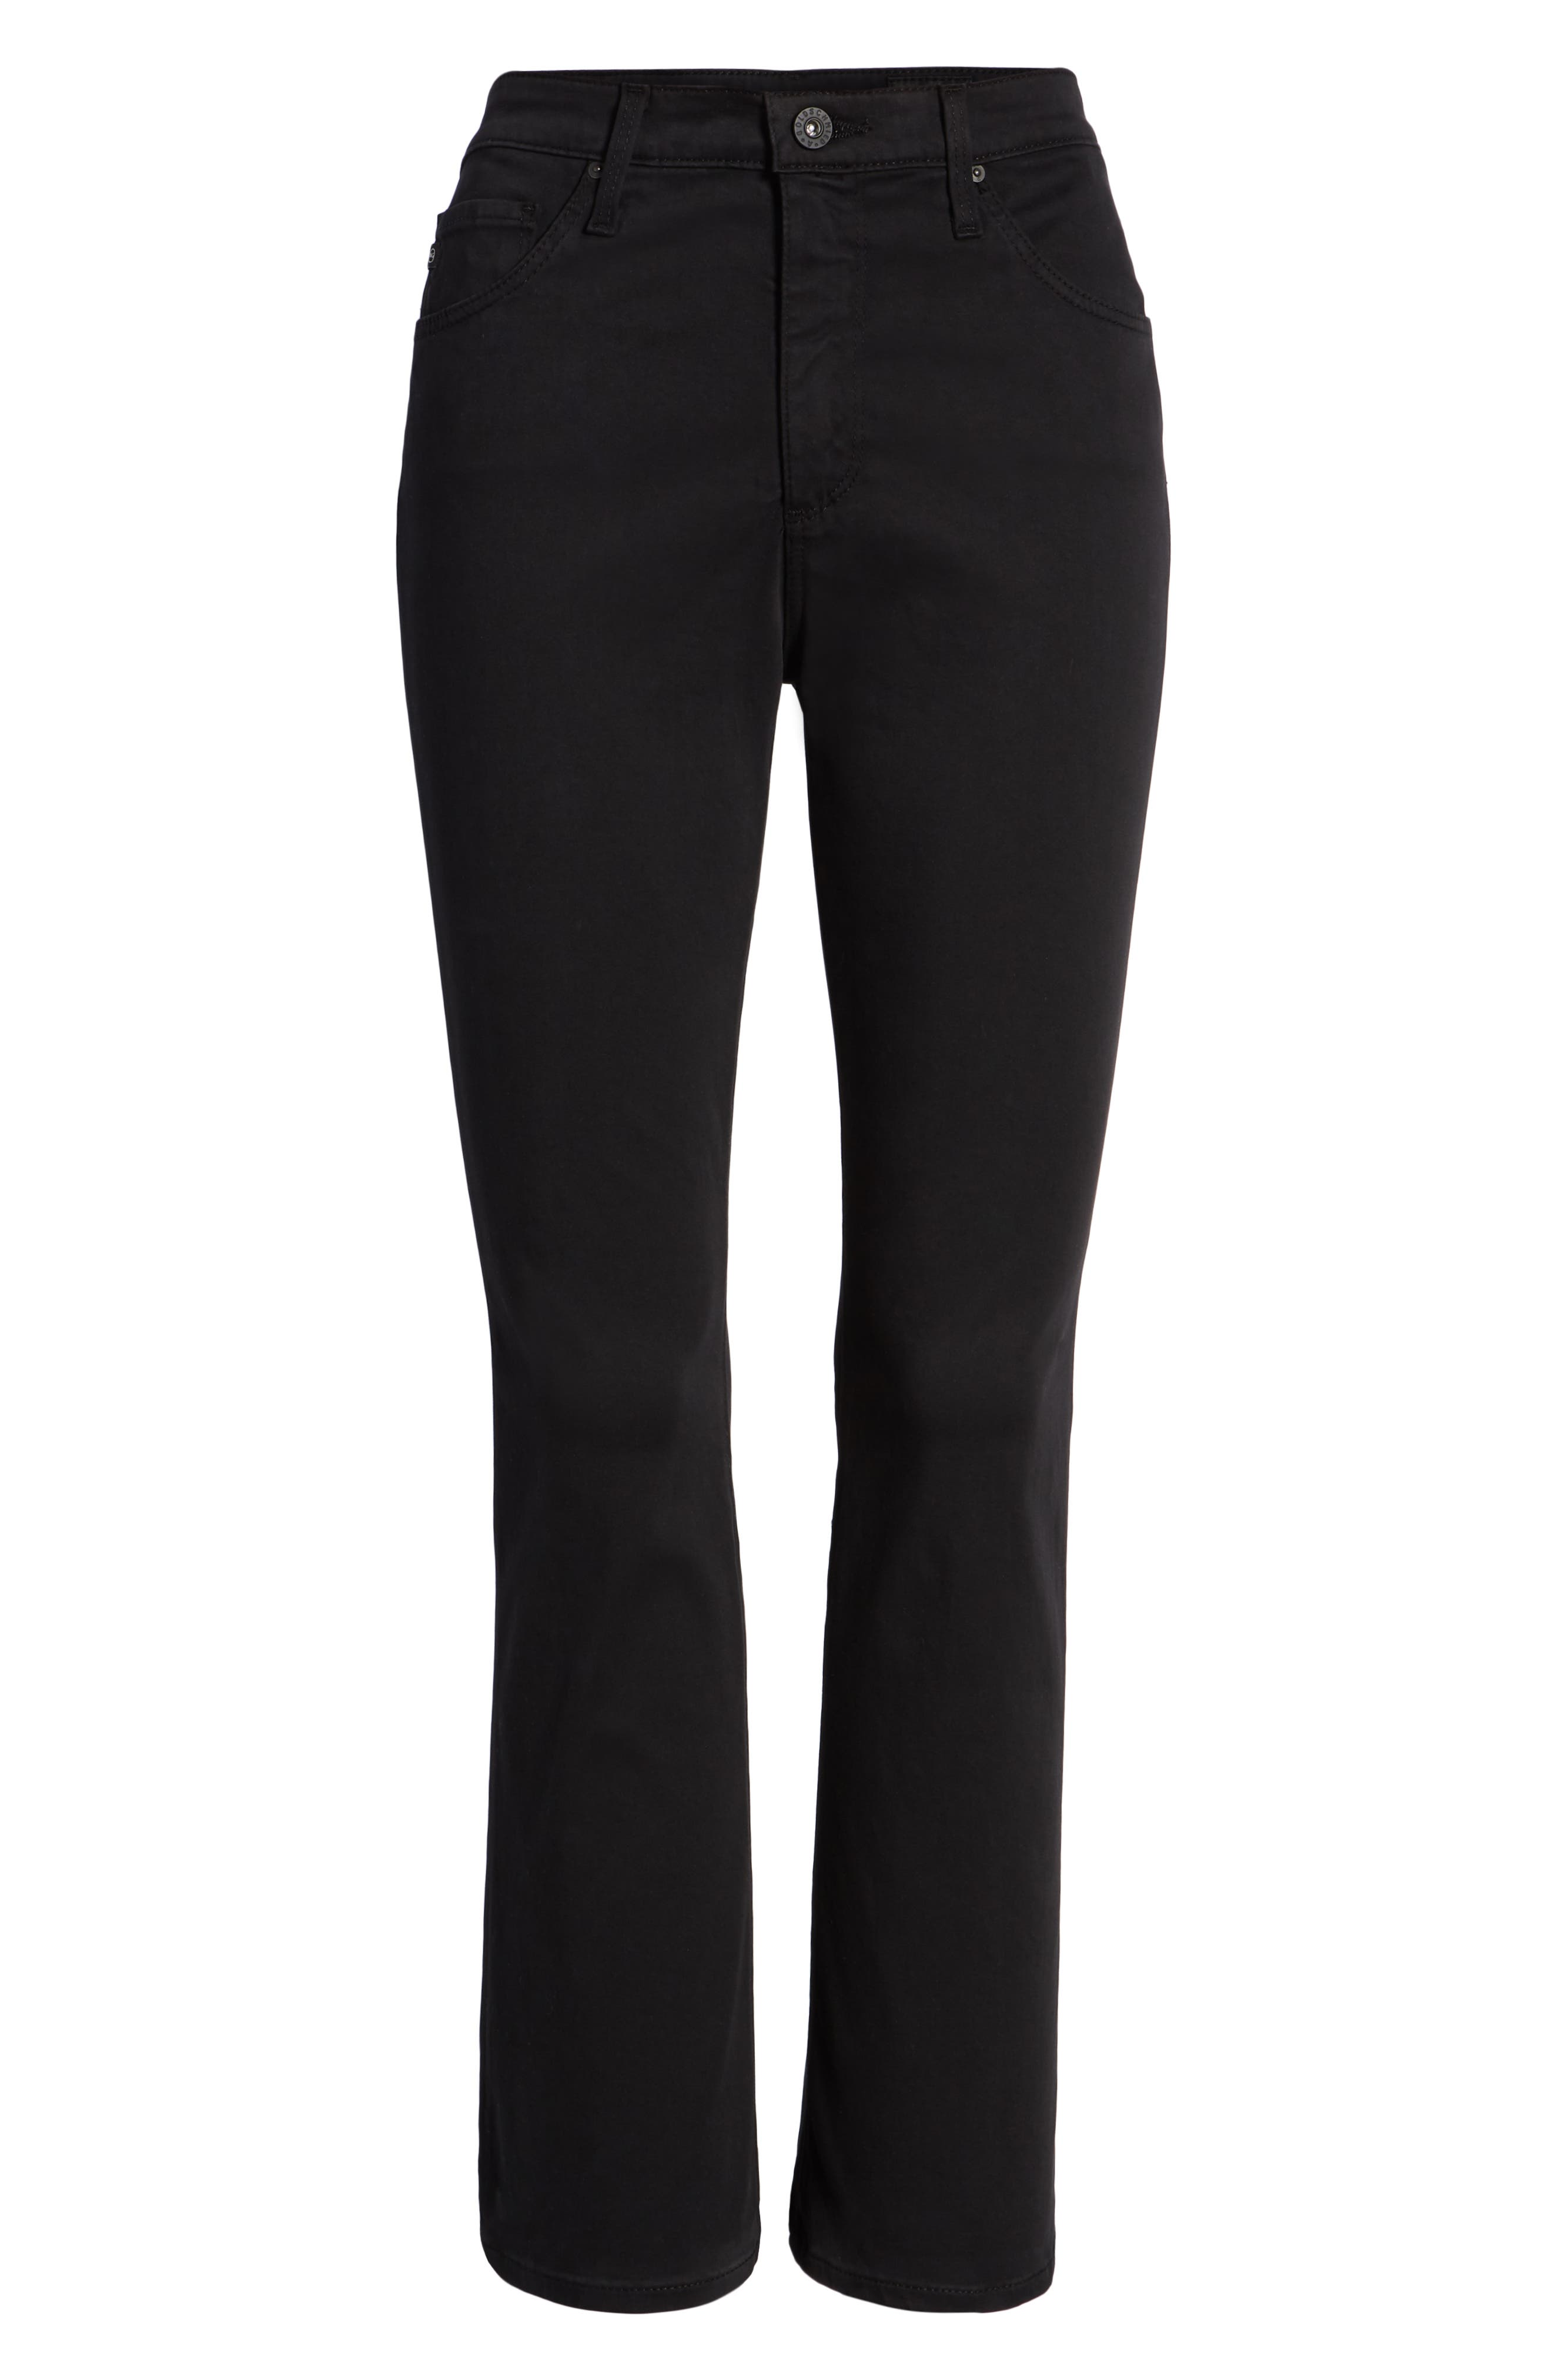 Jodi Sateen Crop Flare Jeans,                             Alternate thumbnail 7, color,                             Super Black